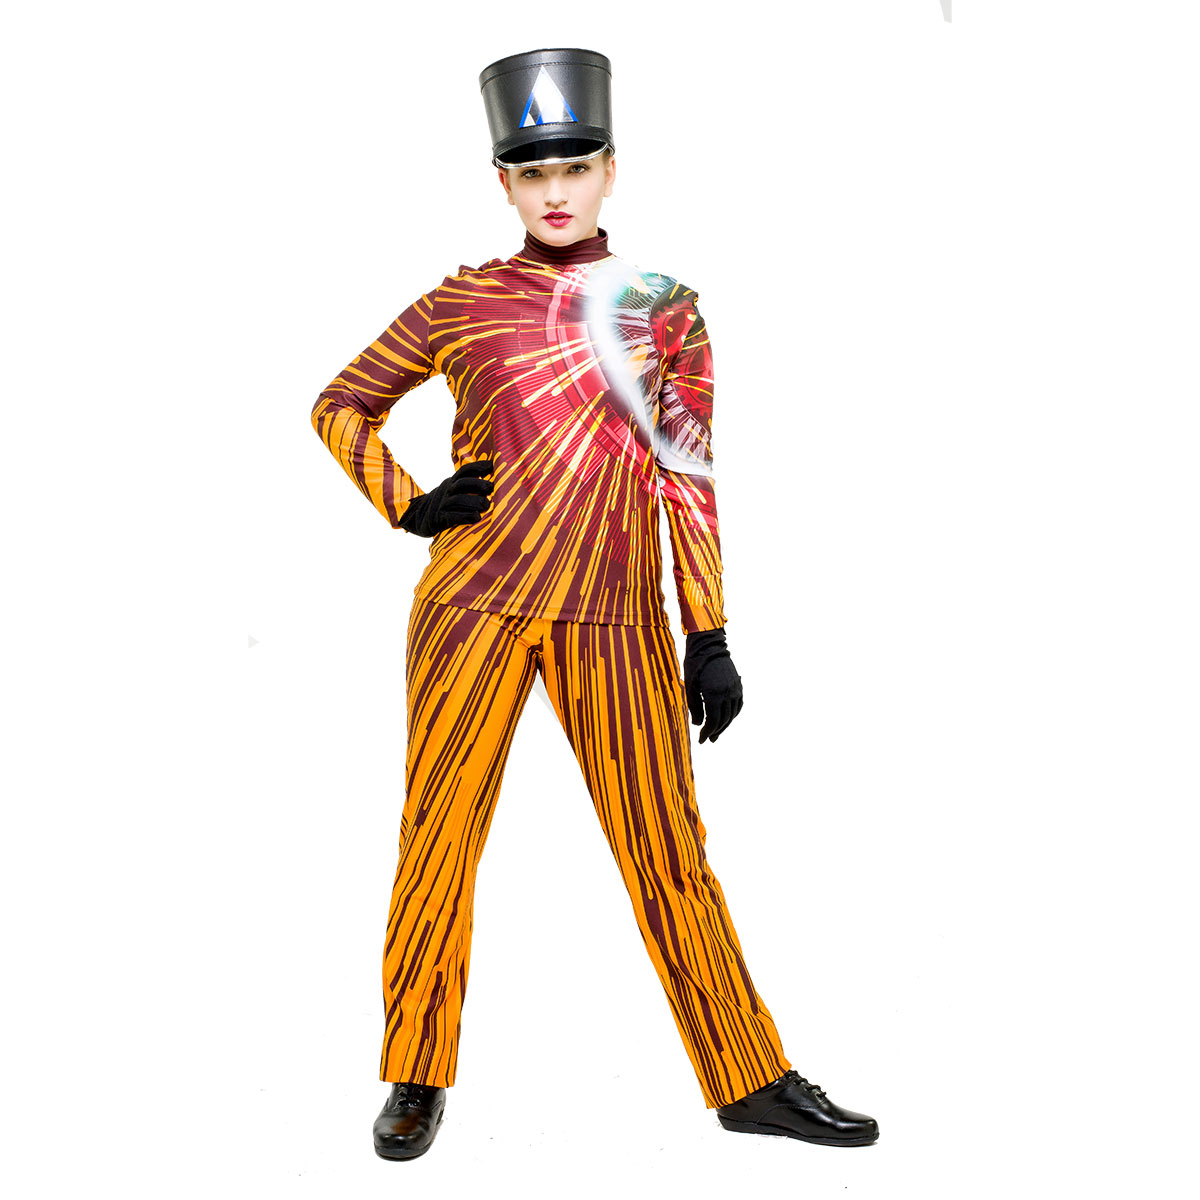 Digital Band Uniforms: Time